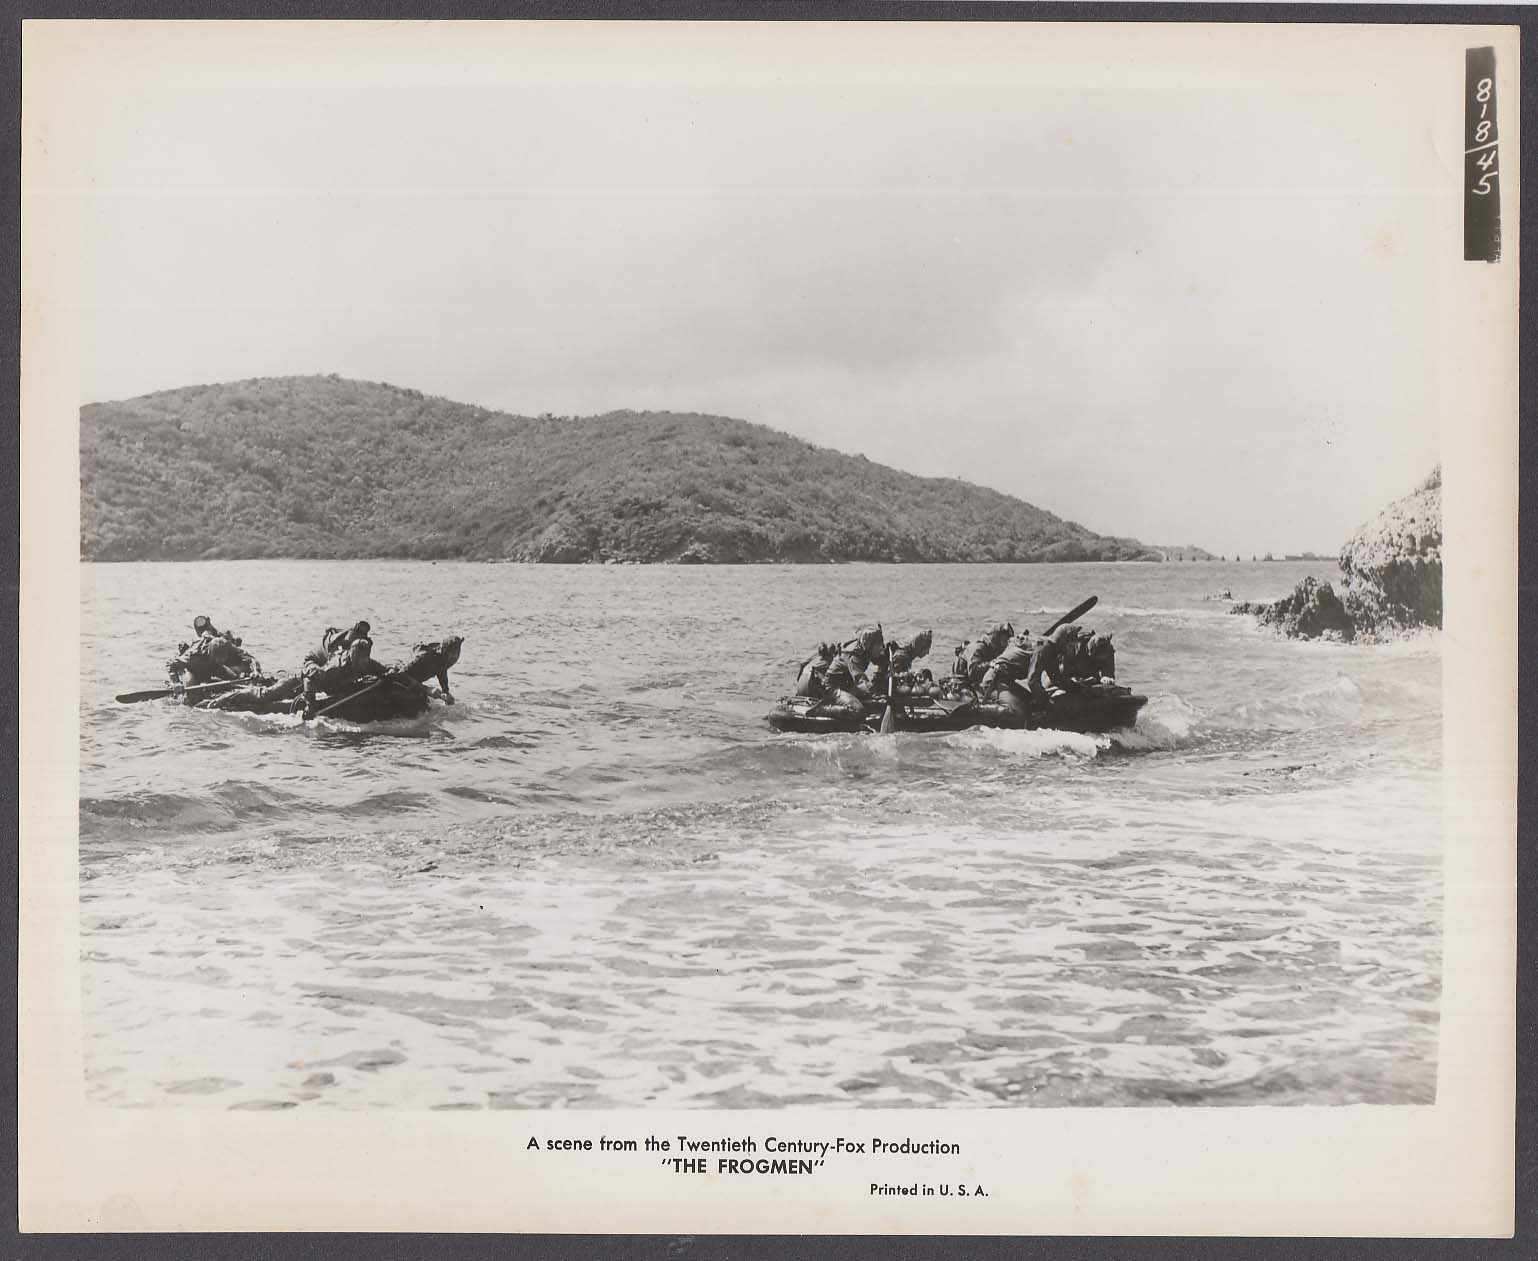 Raiders approaching beach in rafts The Frogmen 8x10 photo 1951